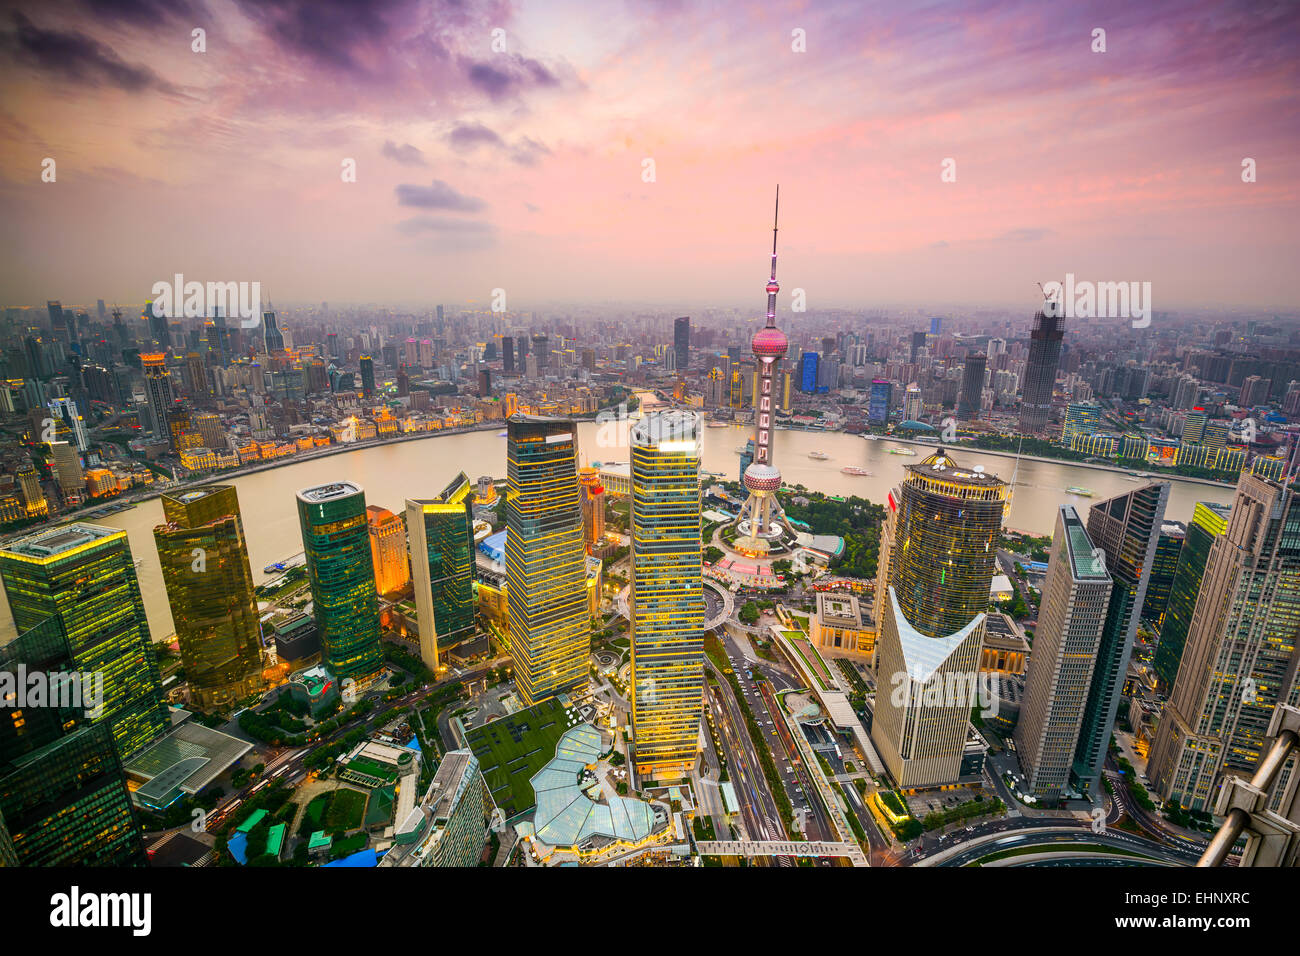 Shanghai, China cityscape overlooking the Financial District and Huangpu River. - Stock Image